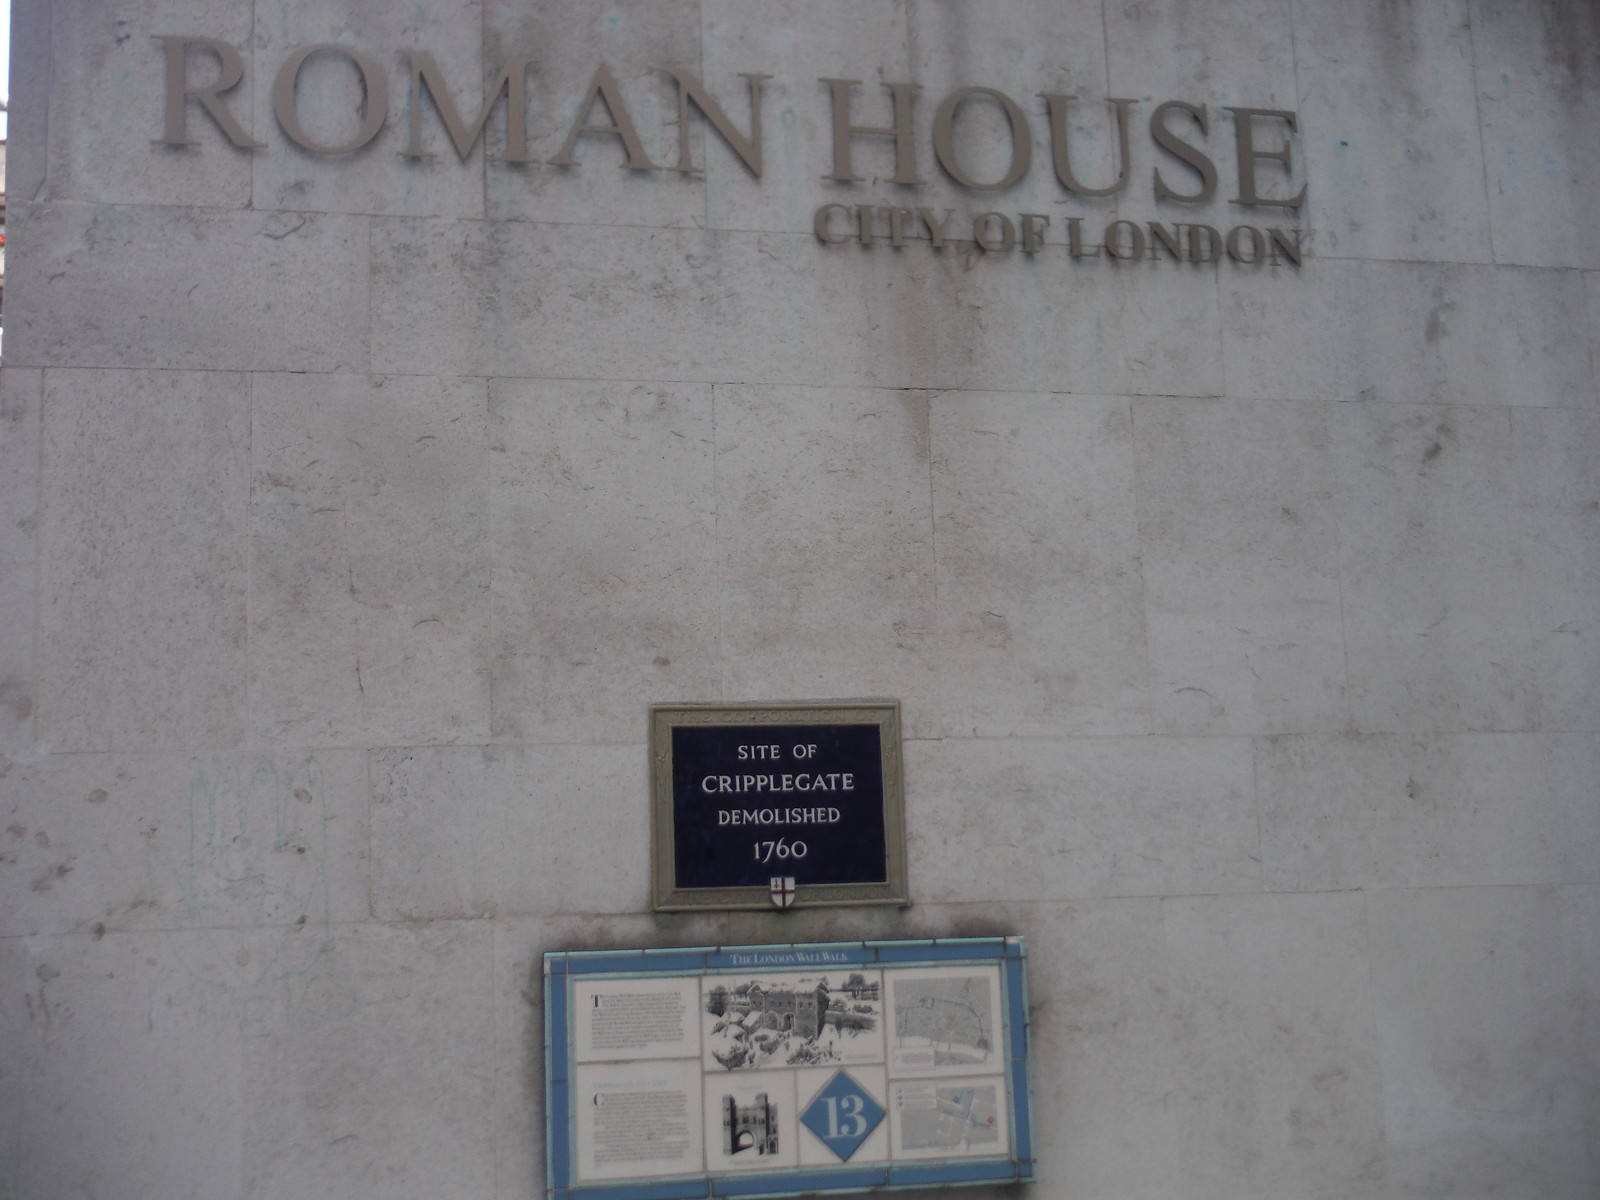 Panels at Roman House, Site of the Cripplegate SWC Short Walk 47 - The London Wall